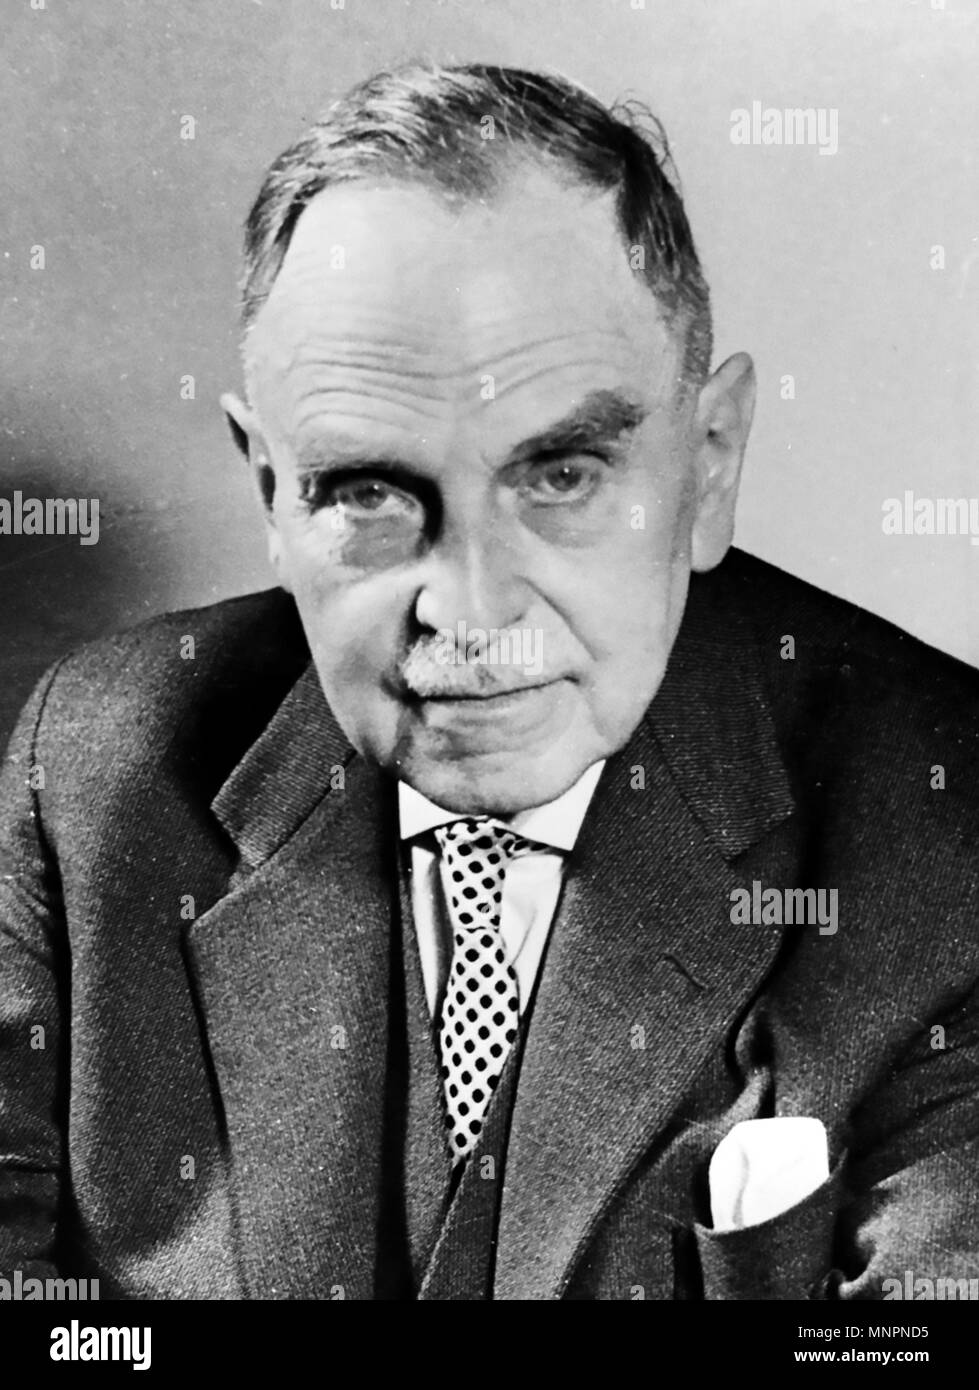 OTTO HAHN (1879-1968) German chemist who discovered several radio active elements - Stock Image